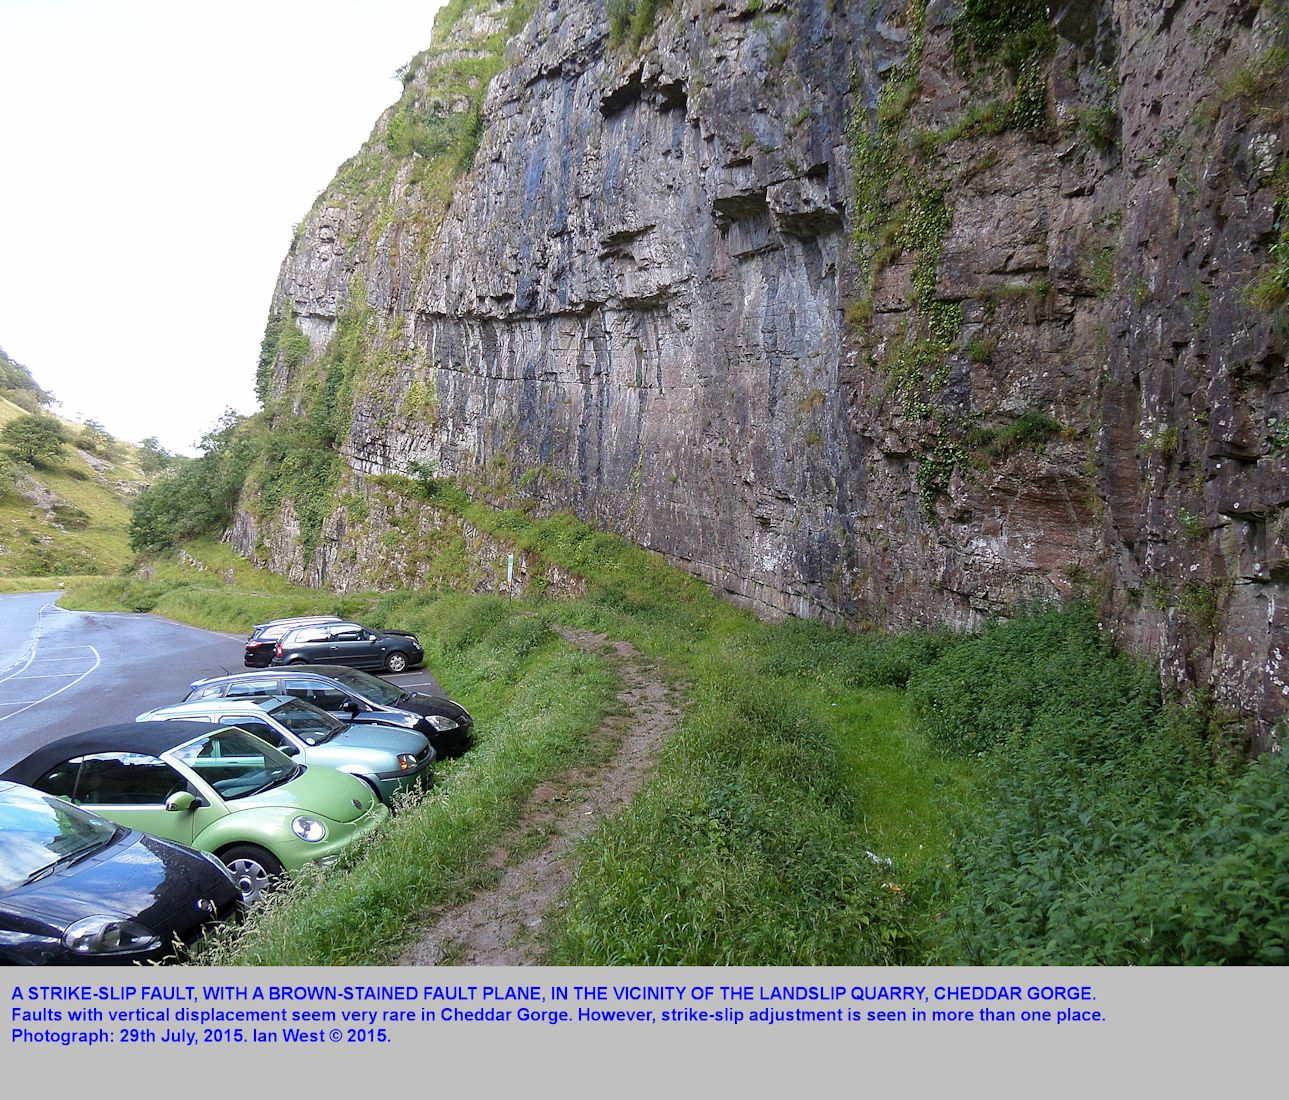 A strike-slip fault seen in the vicinity of the Landslip Quarry, but south cliffs, Cheddar Gorge, Mendip Hills, Somerset, 29th July 2015